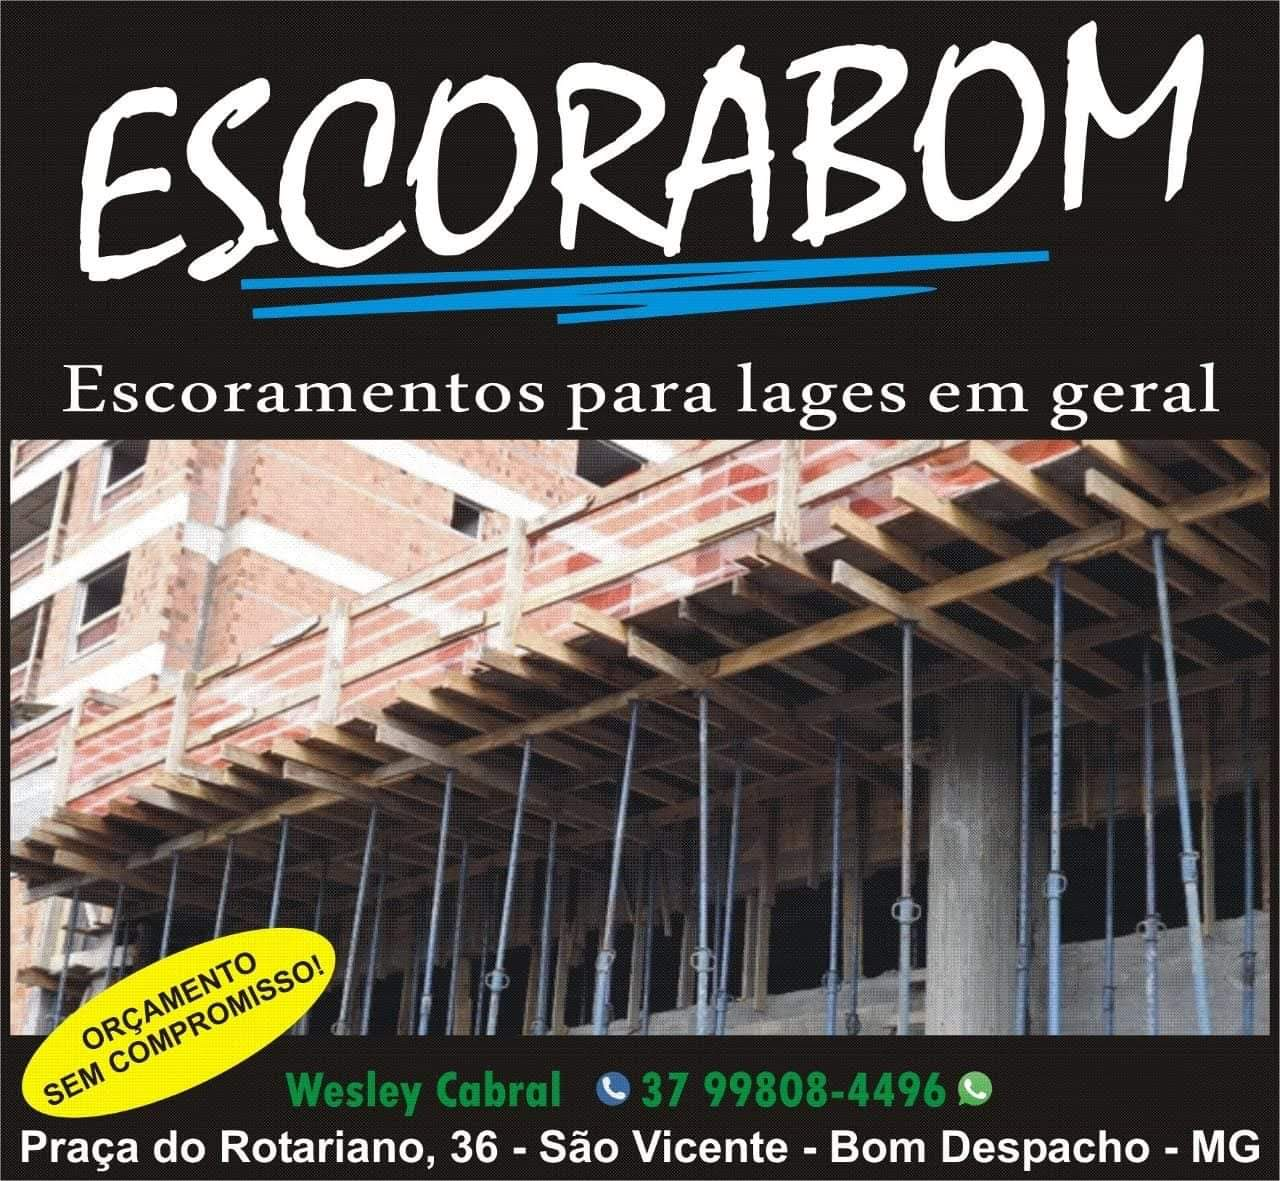 Escorabom